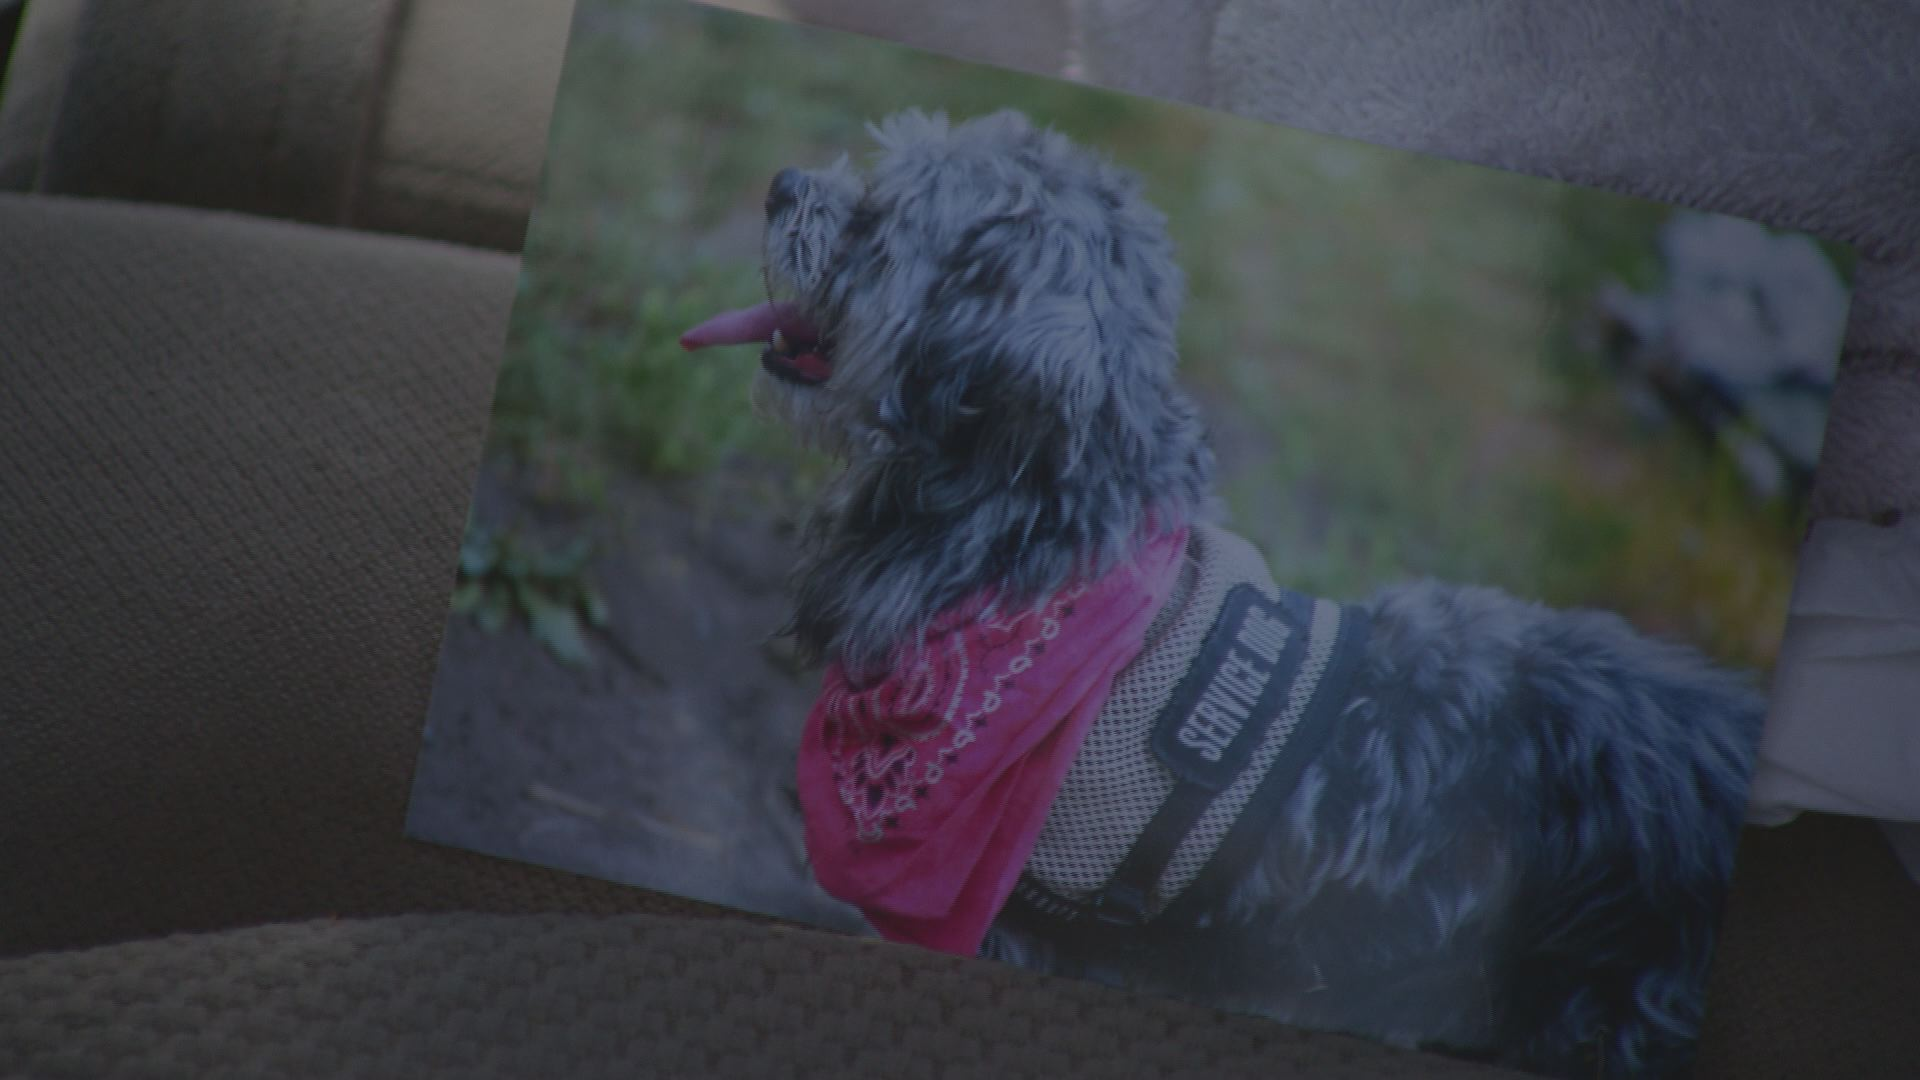 Service dog stolen from Vietnam Veteran